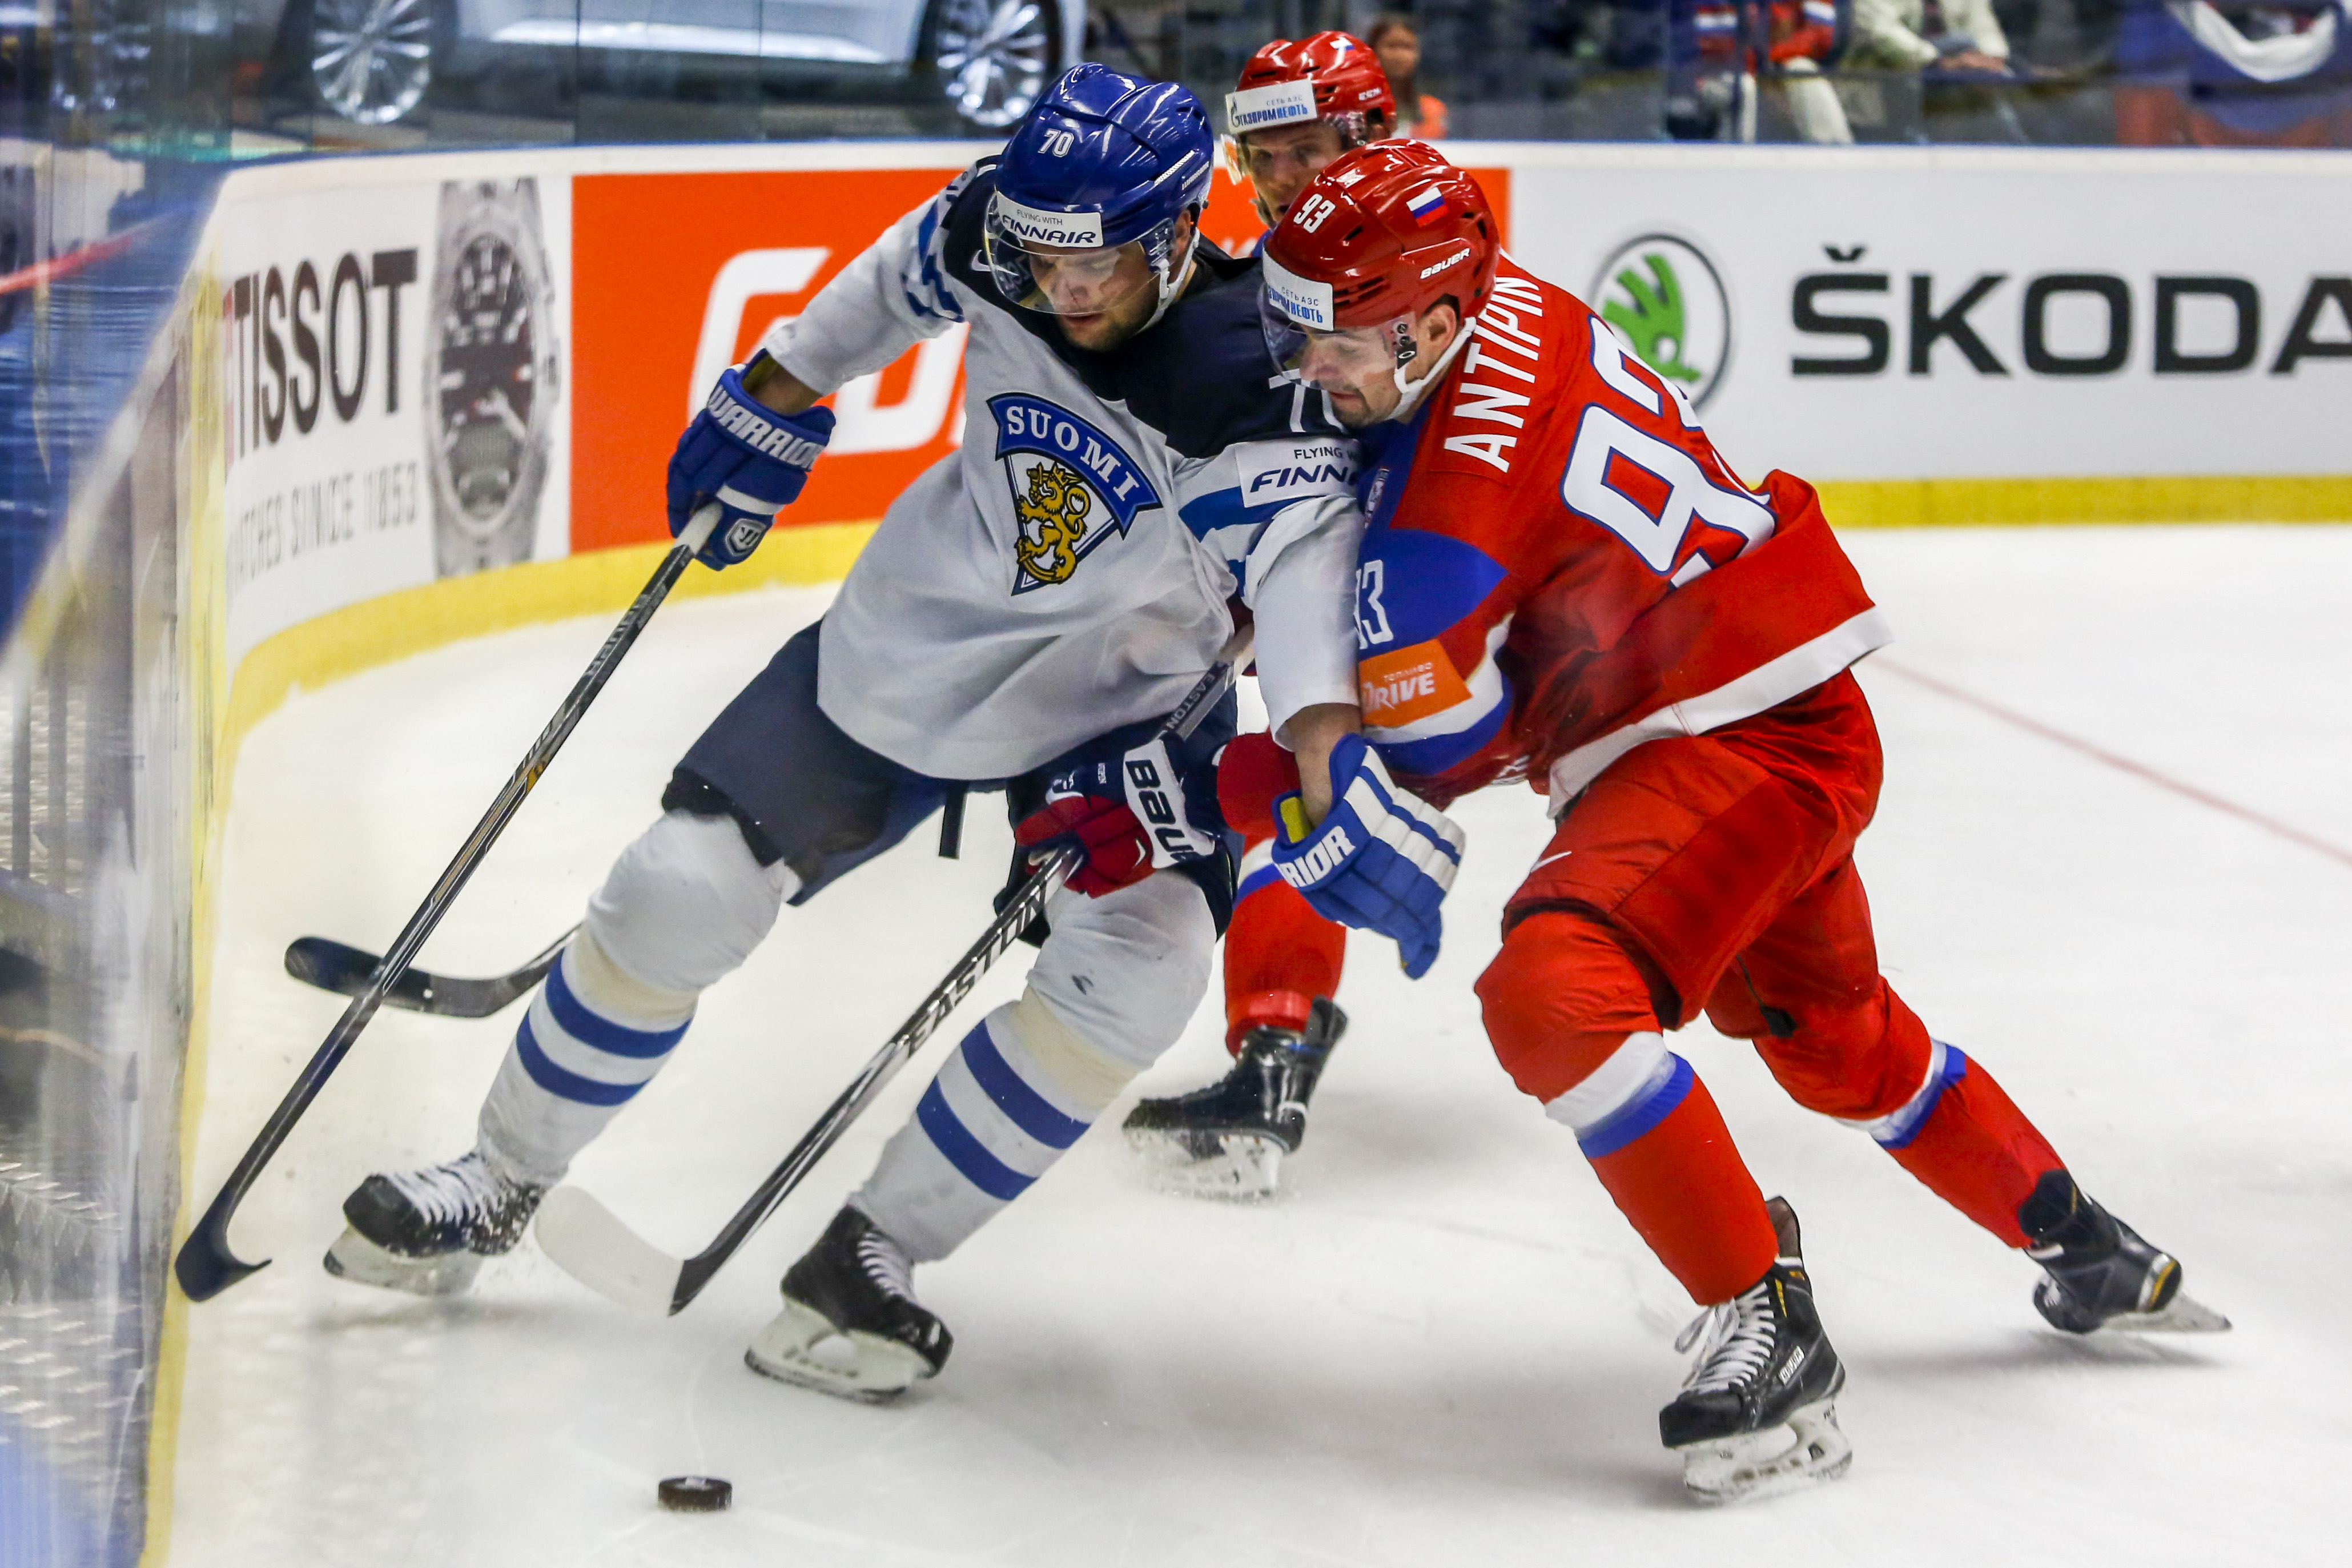 KHL: Victor Antipin Terminates Russian League Contract, Expected To Sign With Buffalo